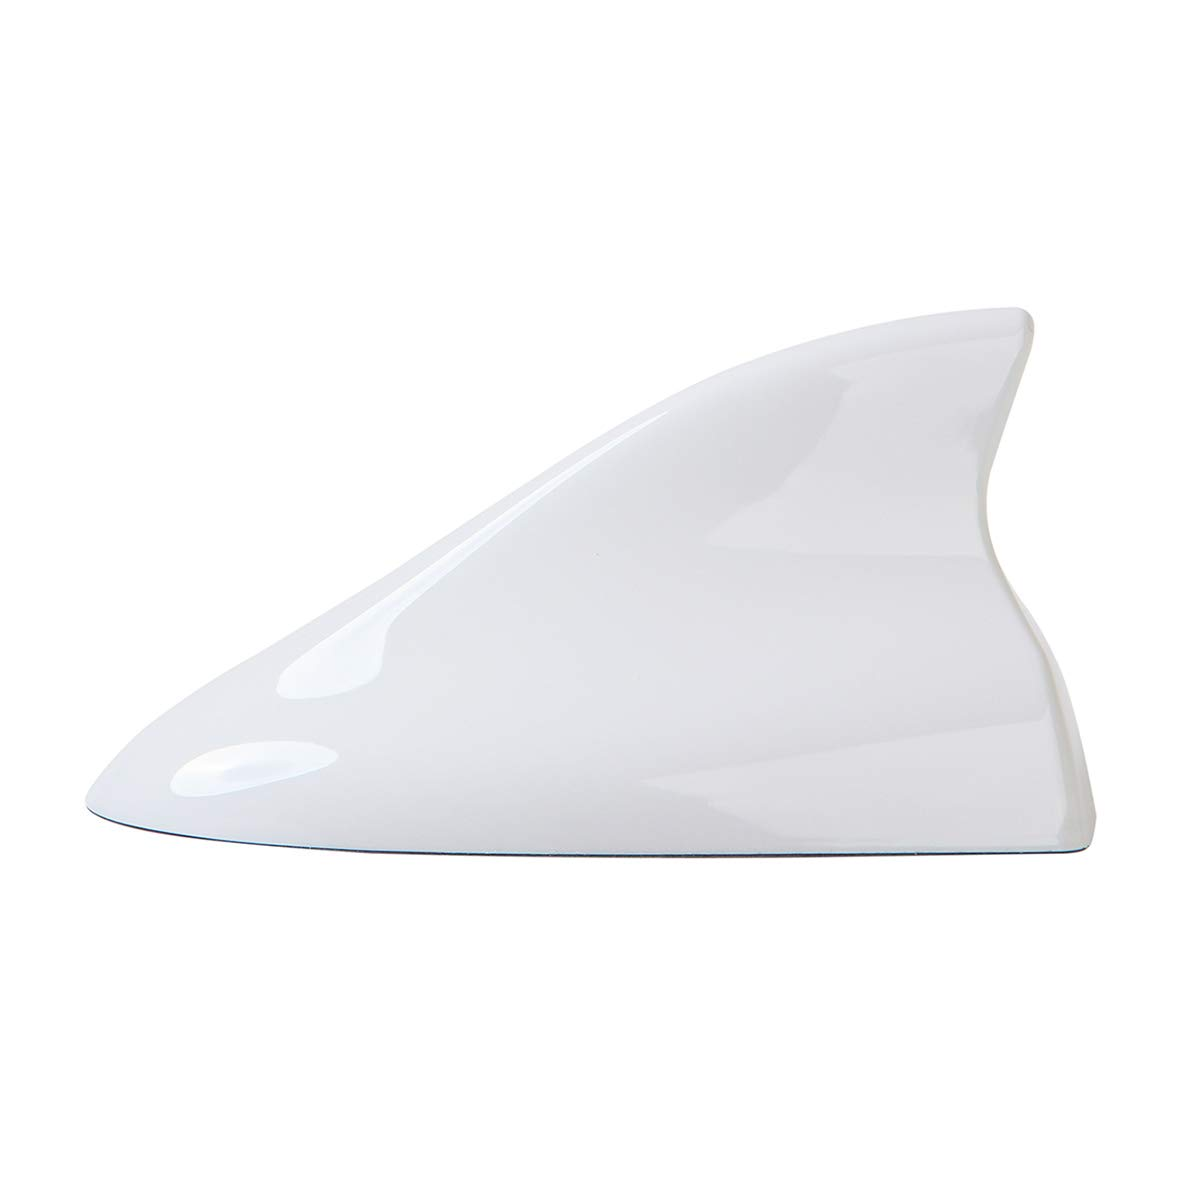 Ramble - Car Shark Fin Antenna, FM AM Radio Aerials, Auto Parts, for Hyundai IX25, IX35, IX45, Santafe, Tucson, Veracruz, I30 and I20 (Advanced Style, White)